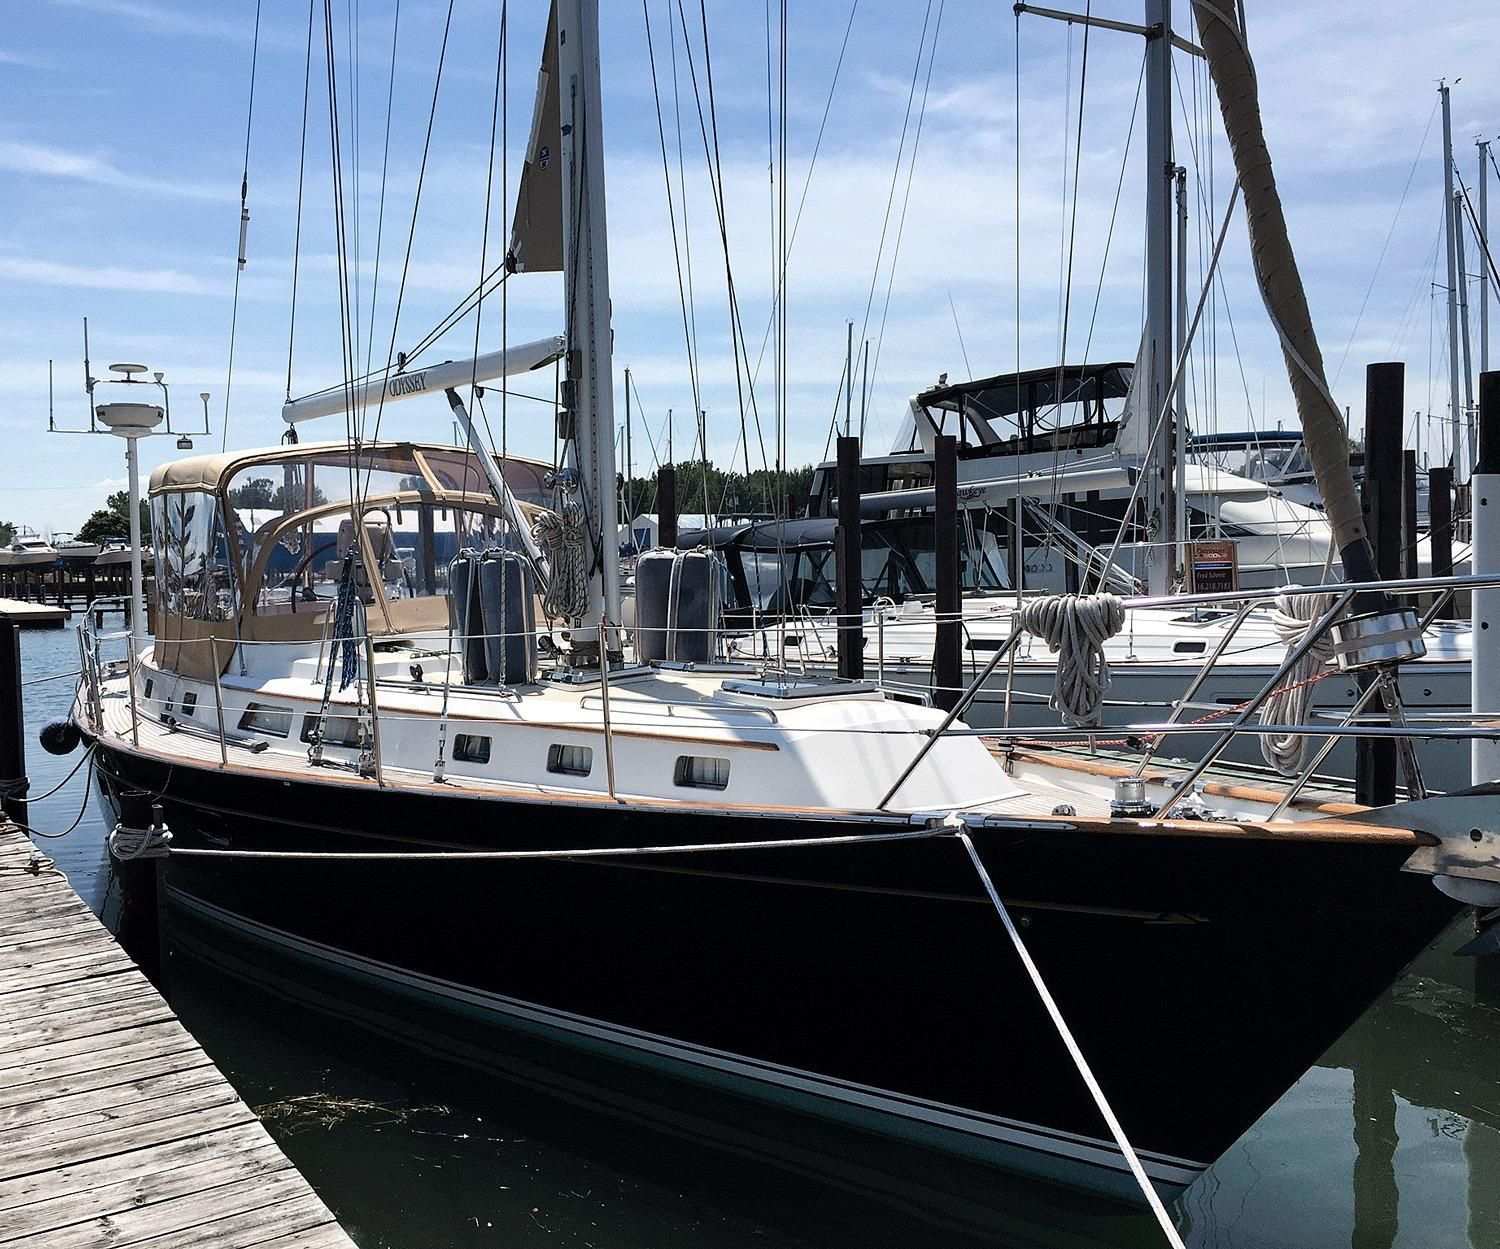 1996 Passport 470 Center Cockpit Sail Boat For Sale Www